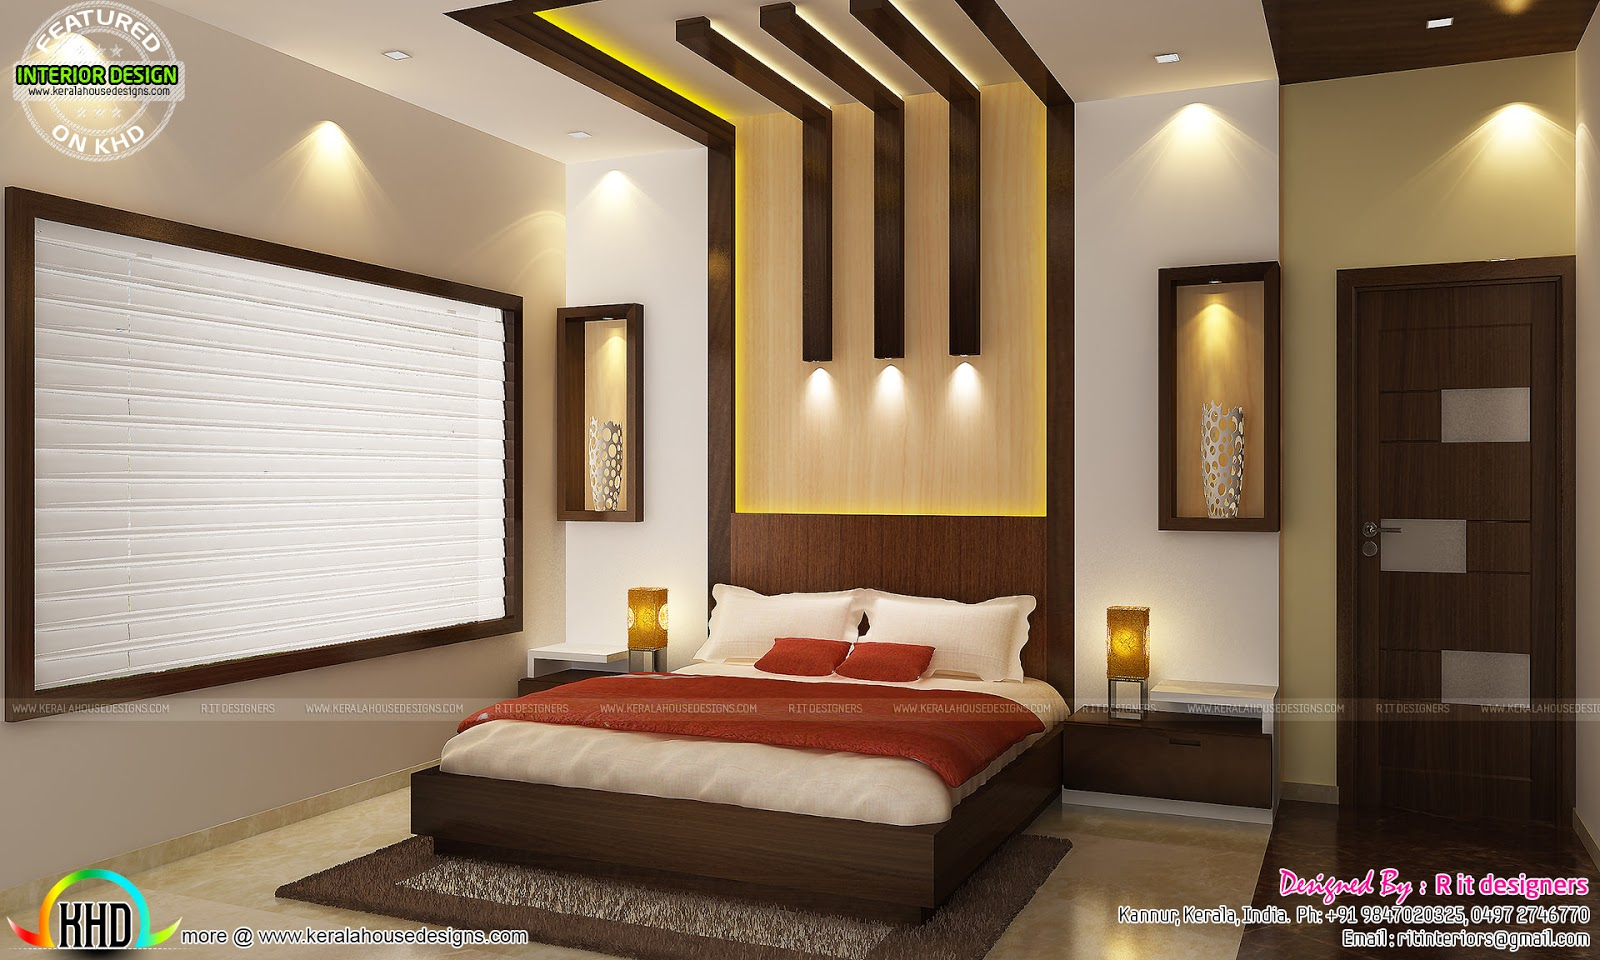 Kitchen living bedroom dining interior decor kerala for Bed interior design picture